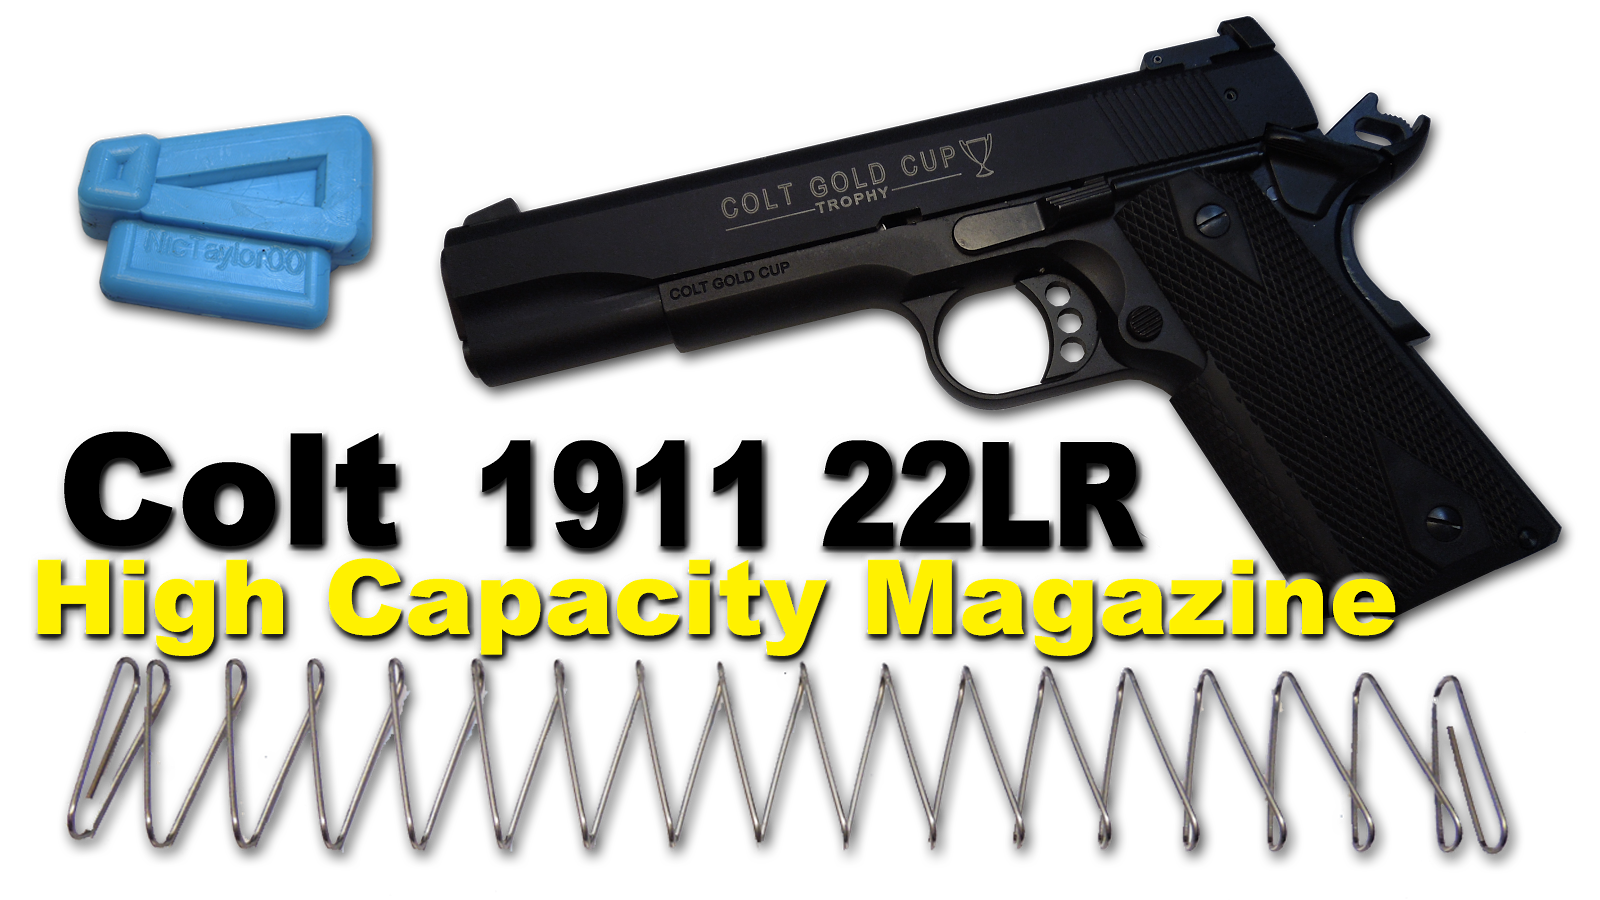 Cole Gold Cup 1911 22lr High Cap Mag